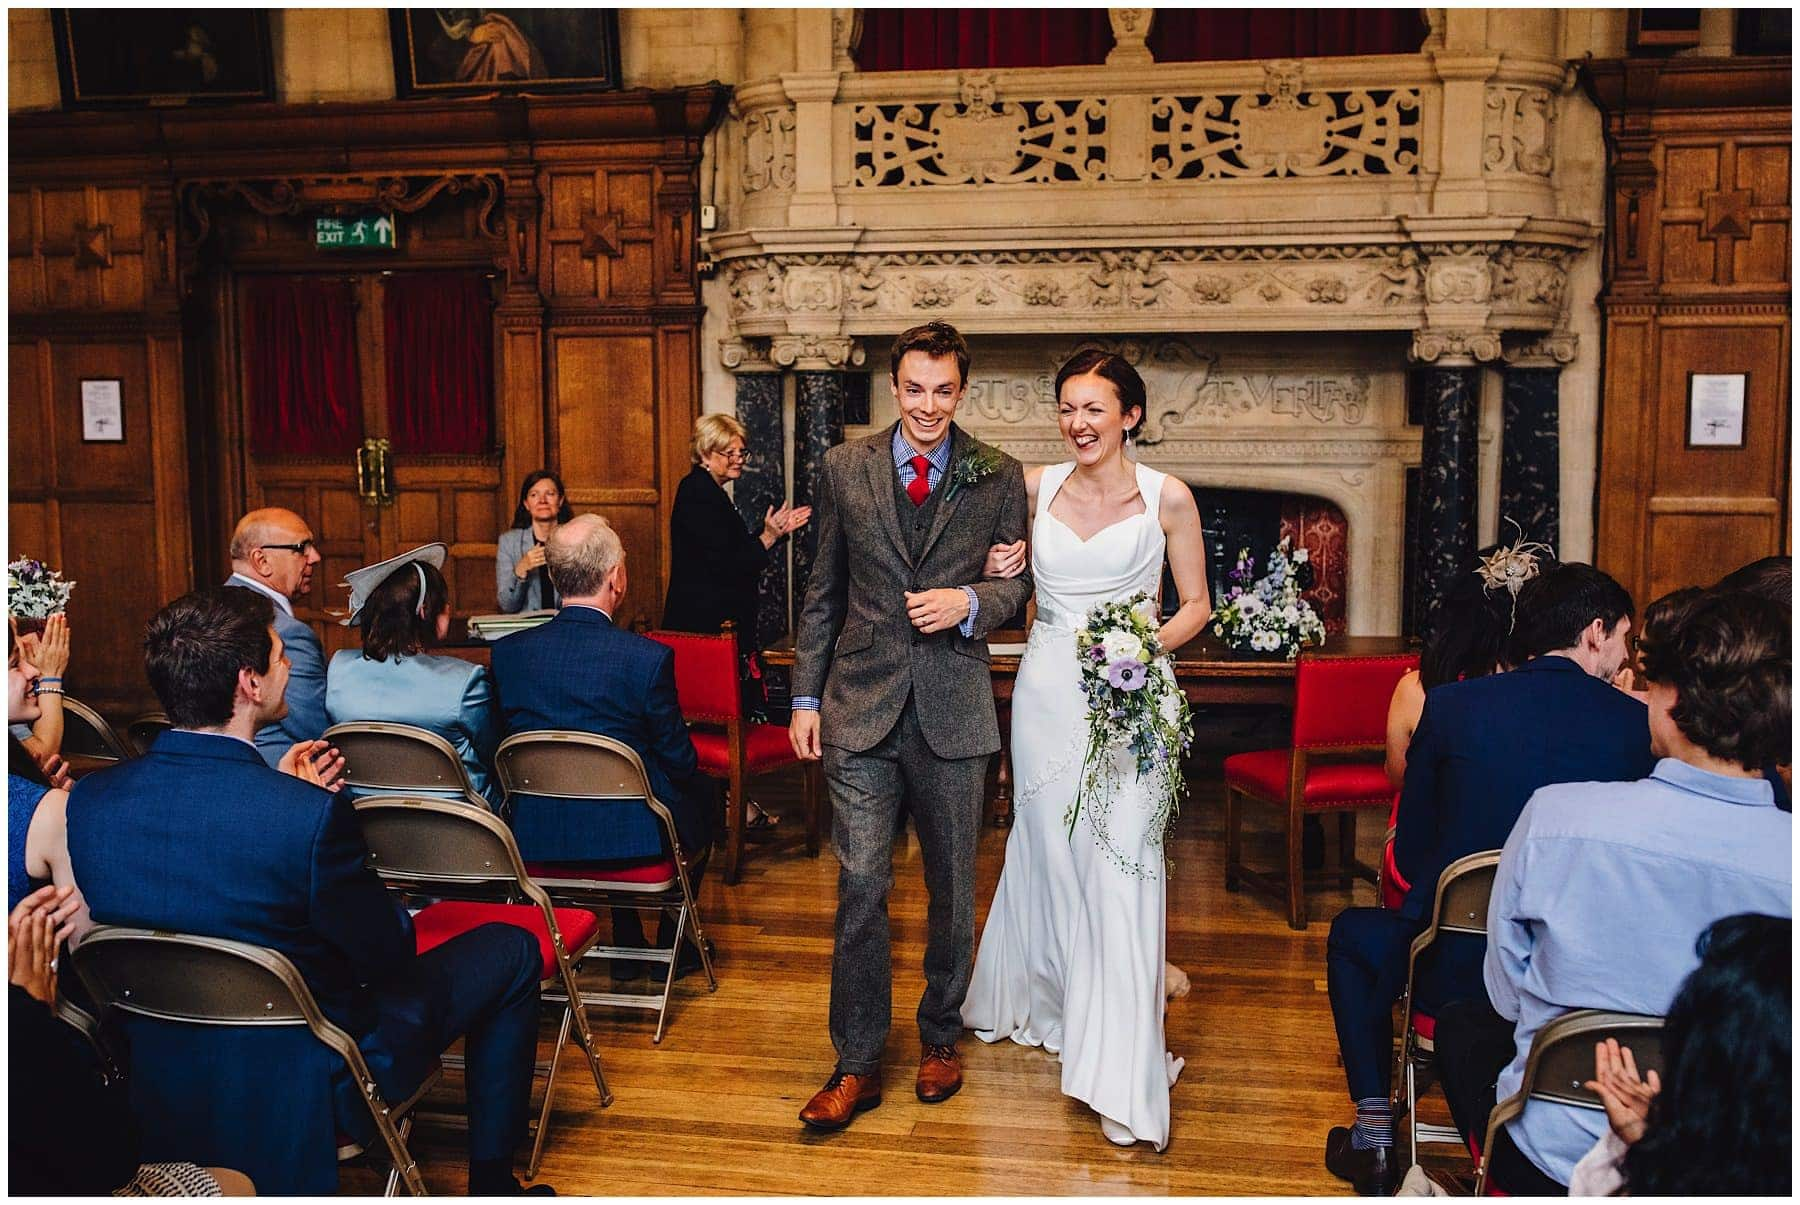 Oxfordshire wedding Photographer J S Coates Wedding Photography. Oxford Town Hall & The Perch Pub 39